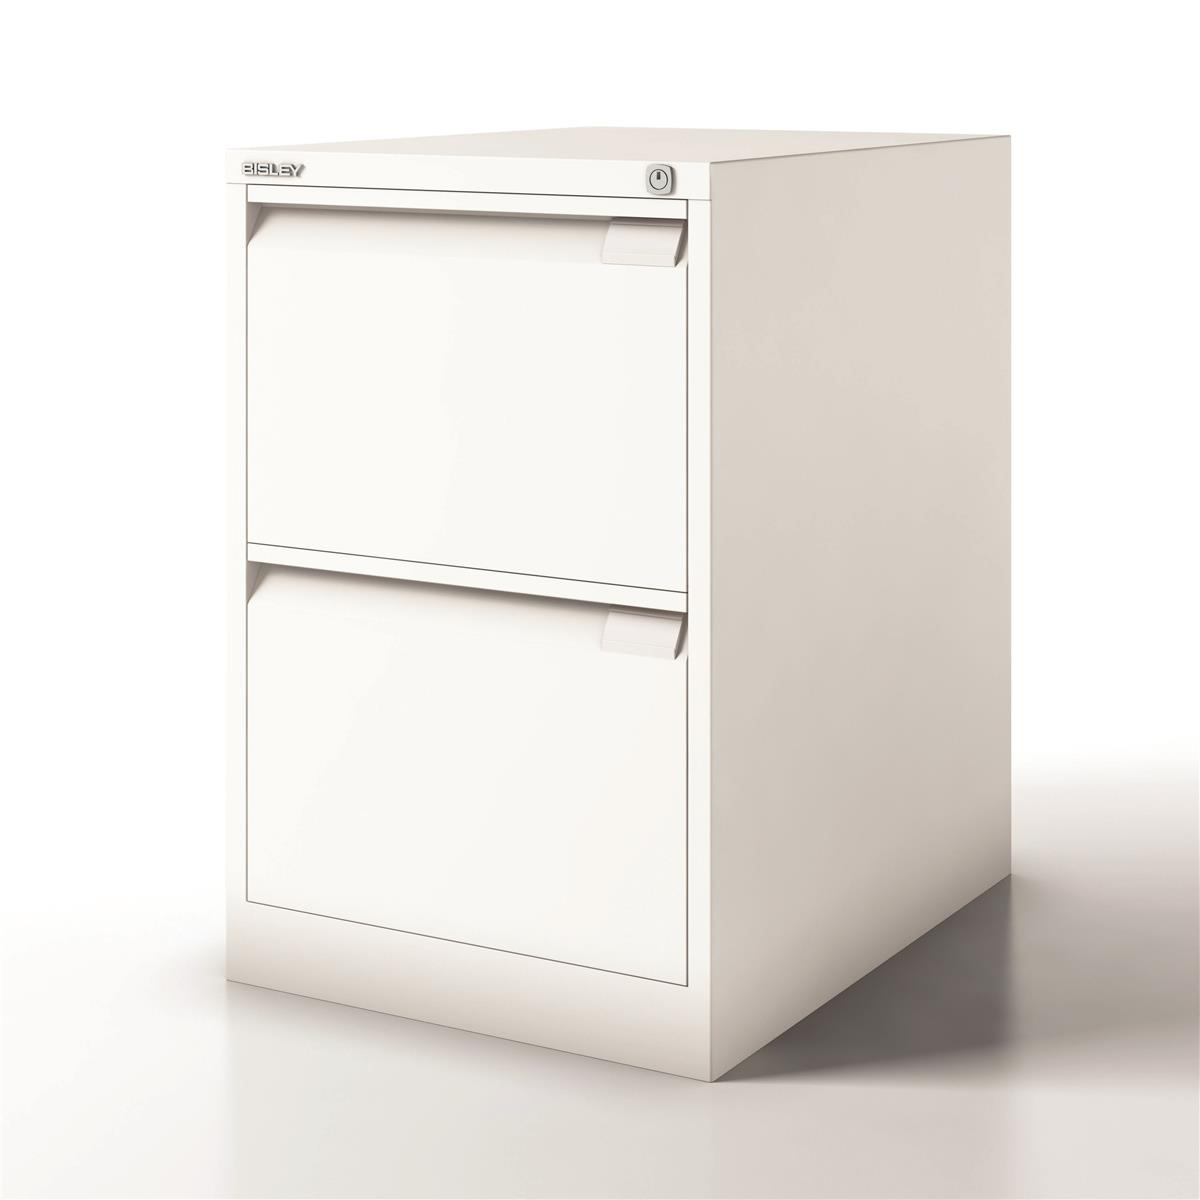 Bisley Filing Cabinet 2 Drawer 470x622x711mm Ref 1623-ab9